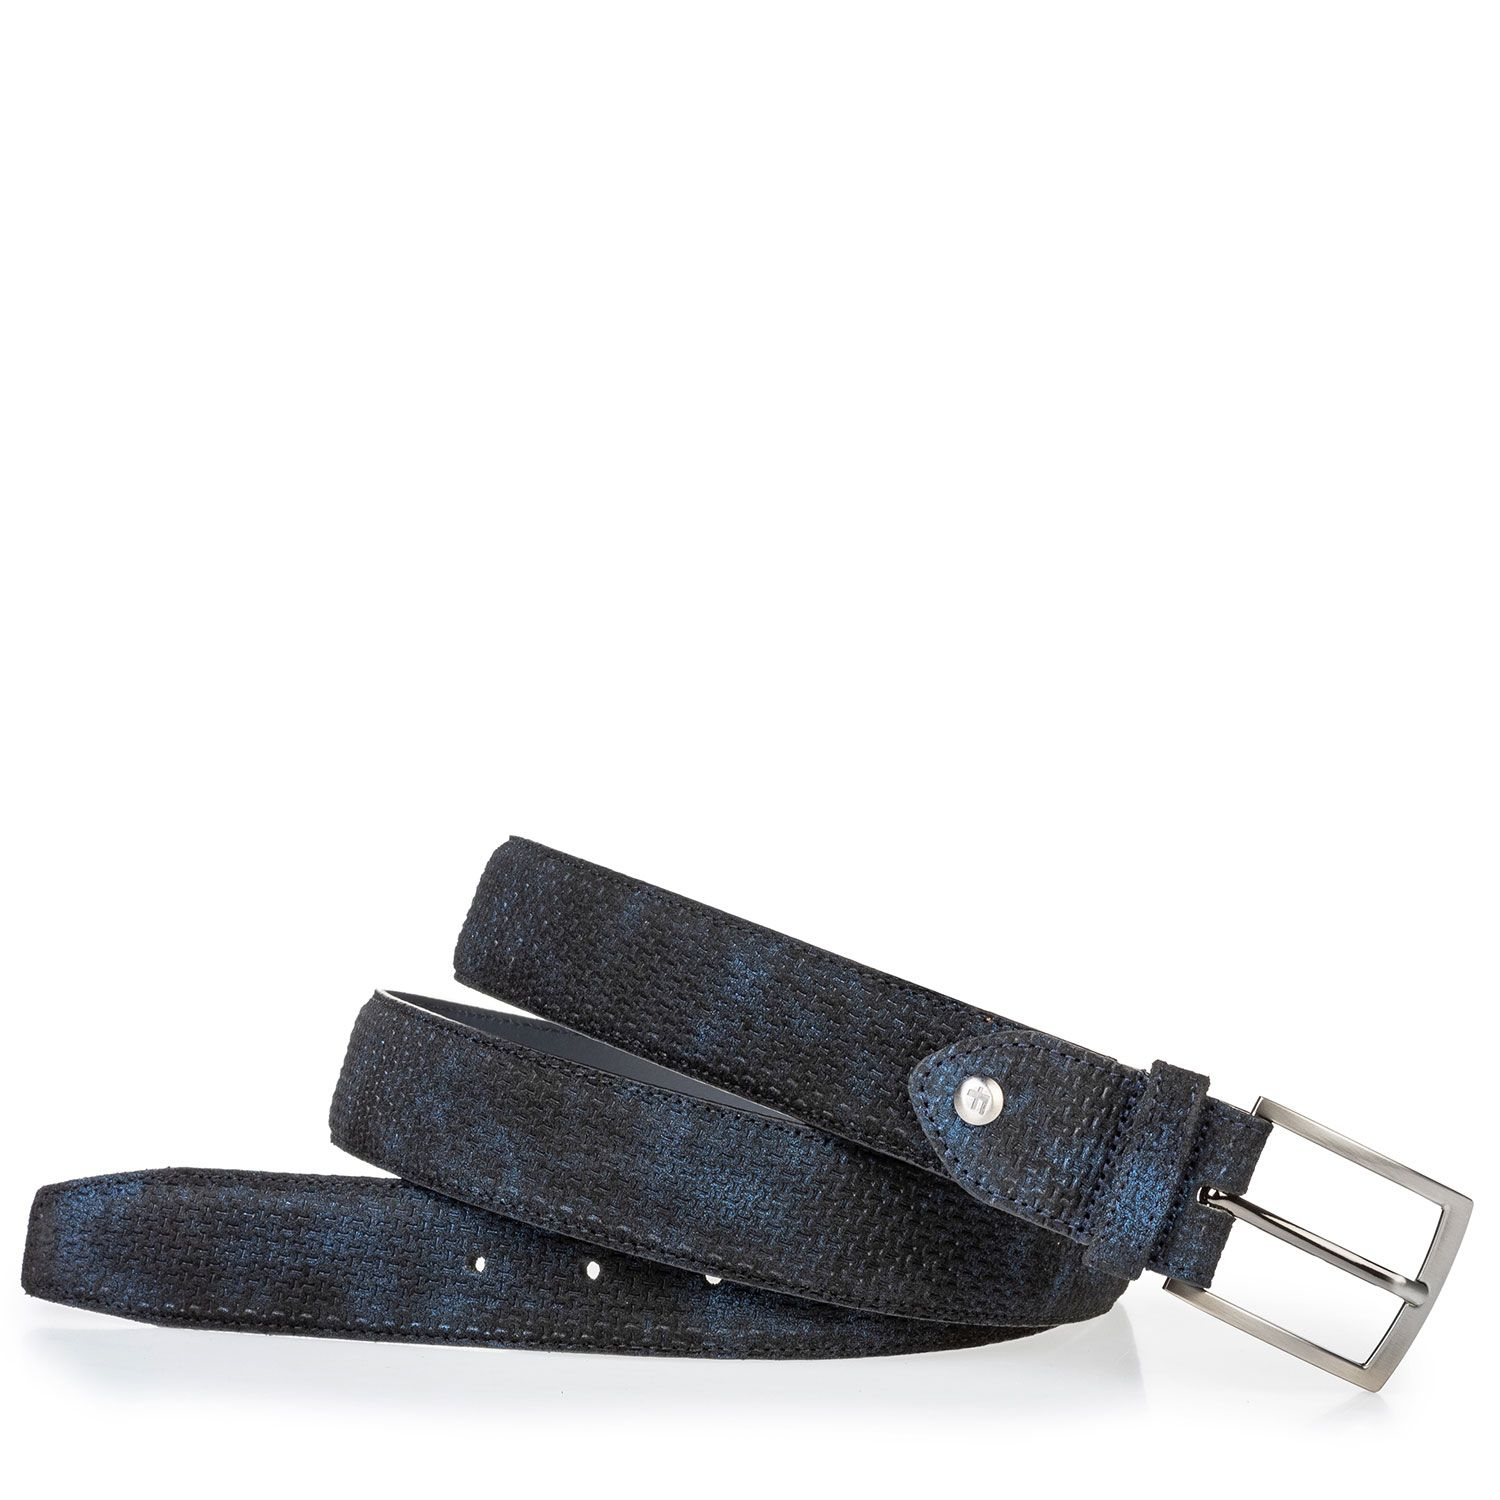 75203/46 - Suede leather belt blue with print